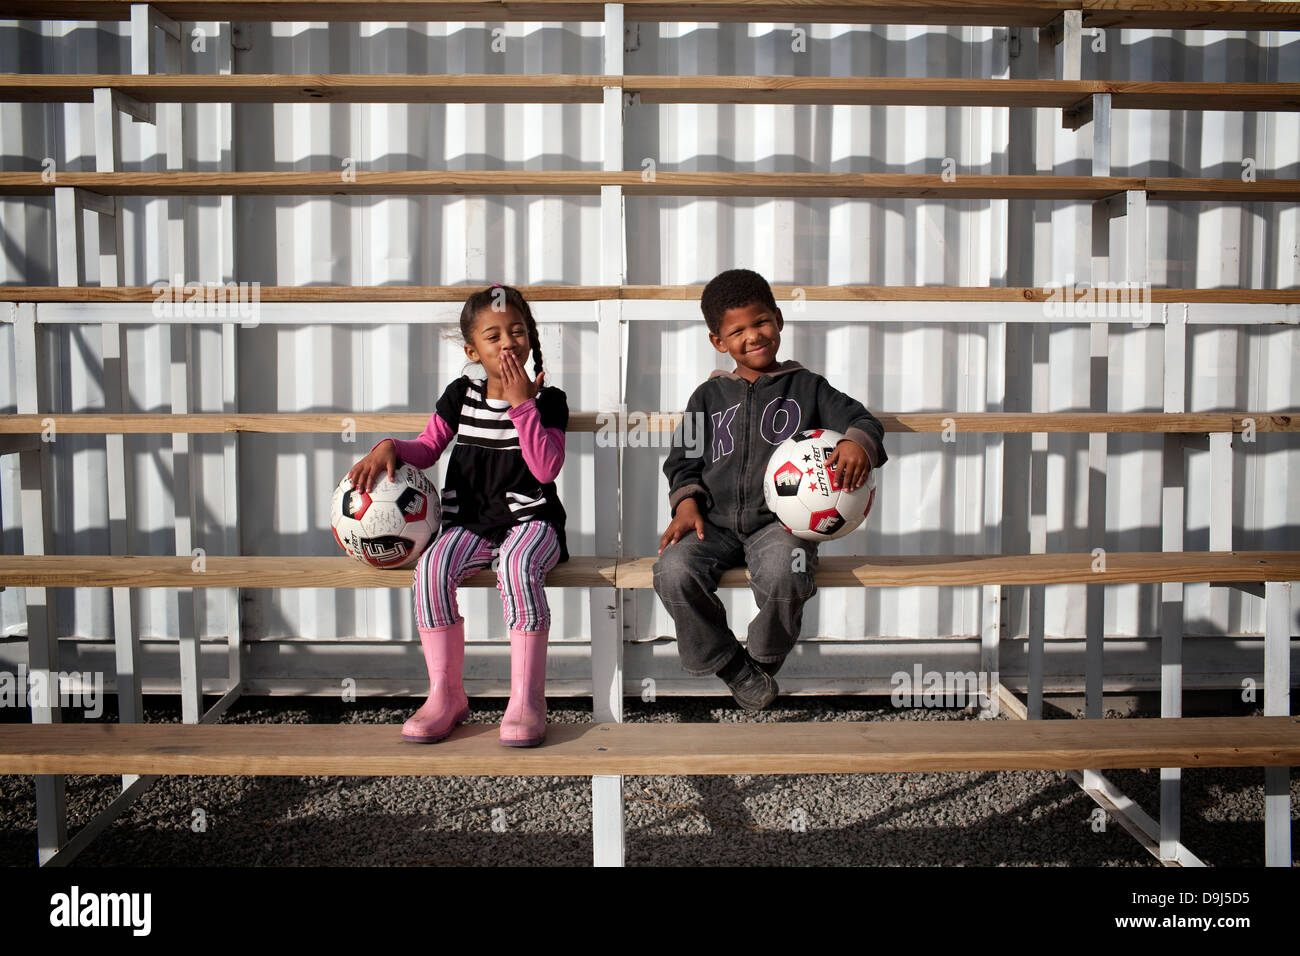 stock holding policy for soccer clubs western cape soccer club The official home of the toy building brick with links to products, games, videos, the lego® shop, lego history, fan creations and our help center.